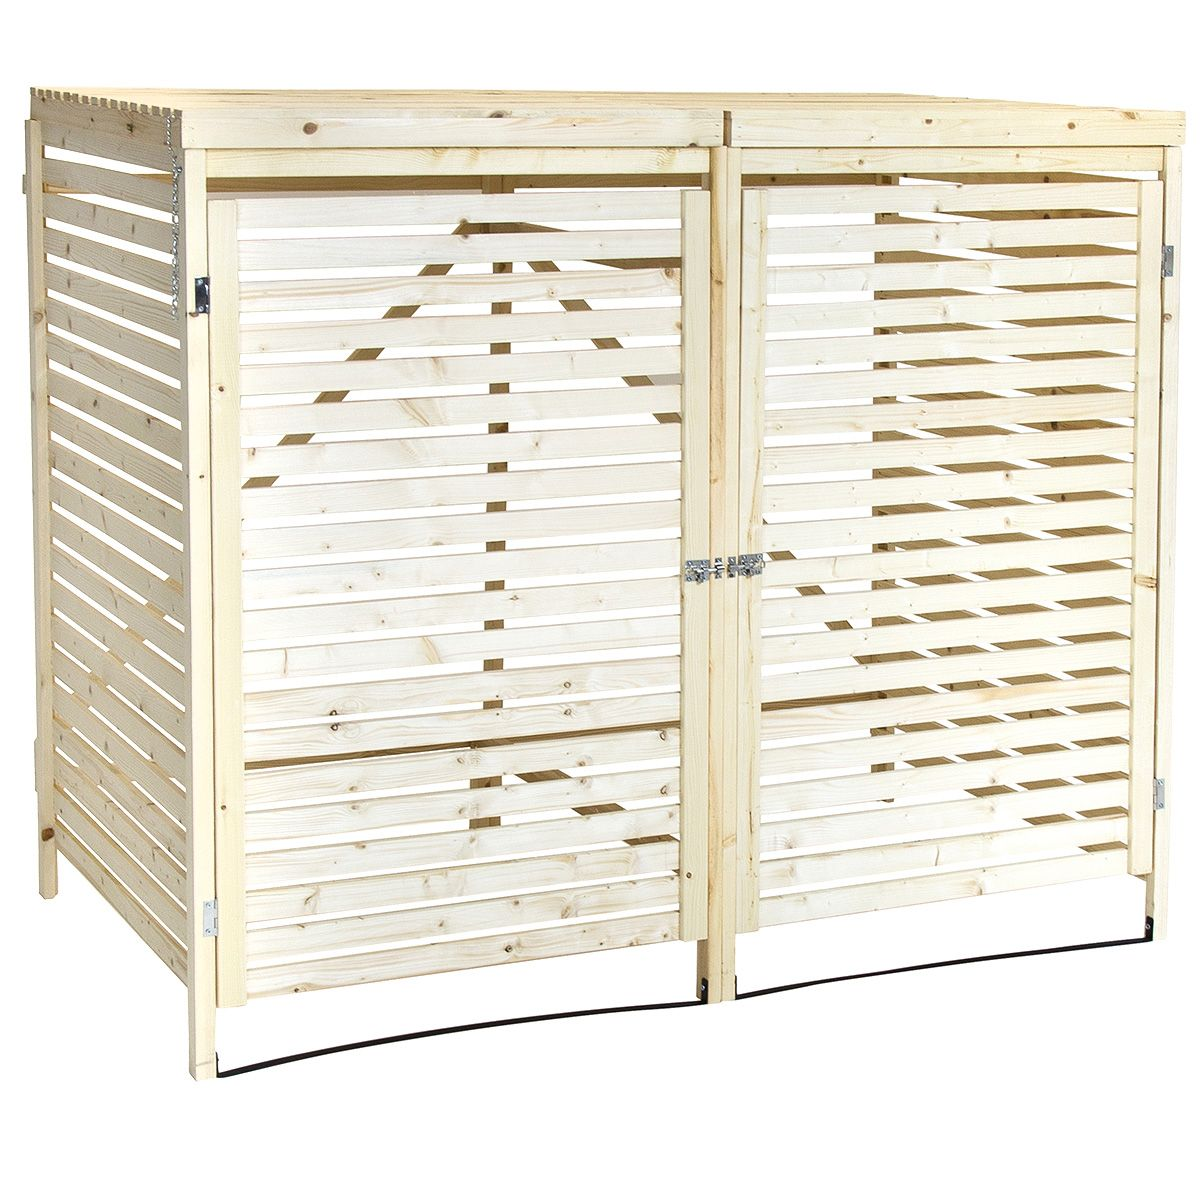 Charles Bentley Double Wheelie Bin Storage Unit - Buydirect4u  sc 1 st  Pinterest & Charles Bentley Wooden Double Wheelie Bin Storage Unit | Bin storage ...